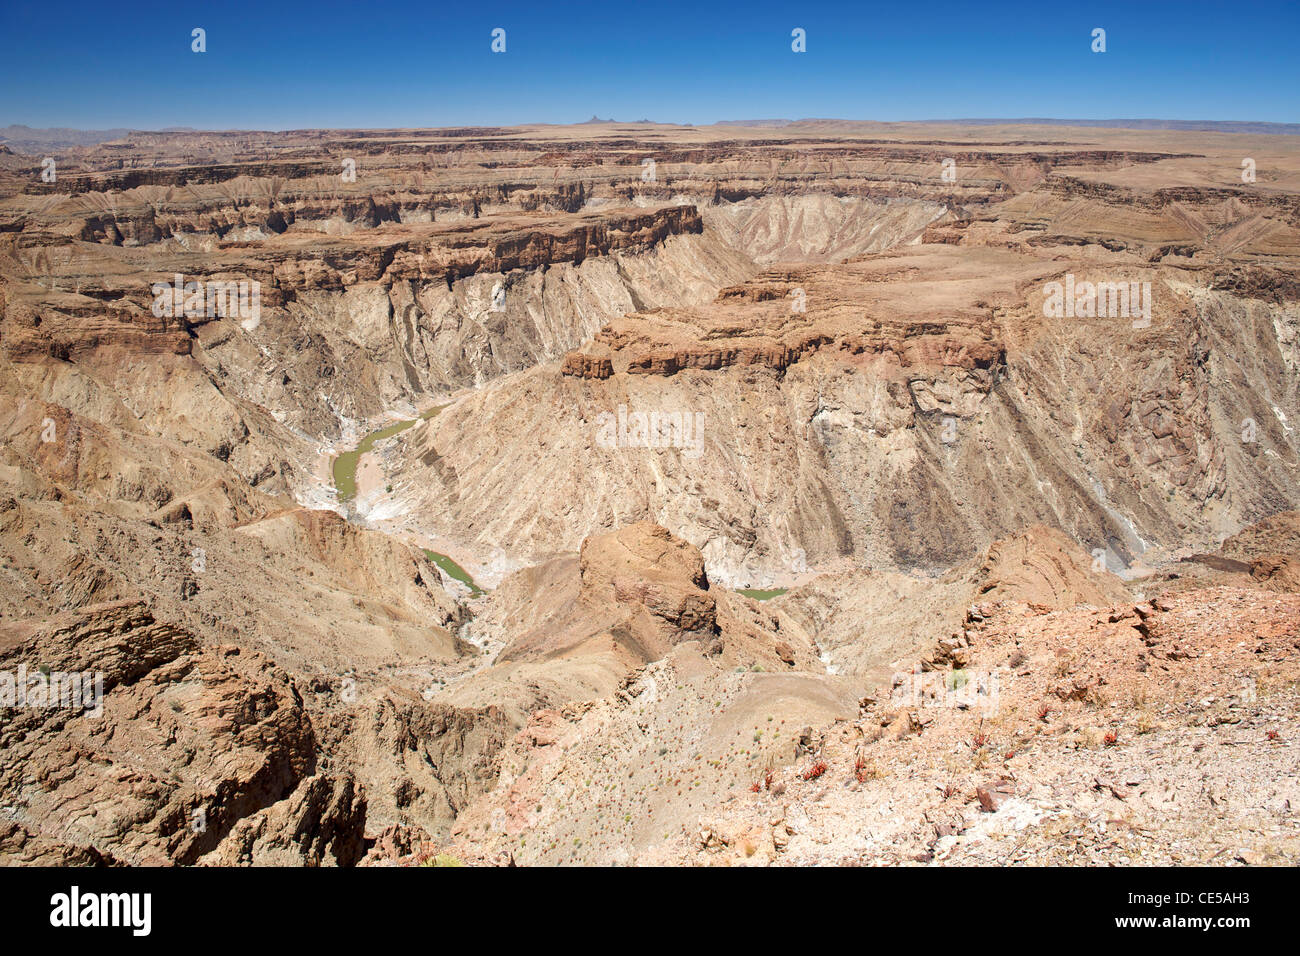 View across the Fish River Canyon in southern Namibia. - Stock Image